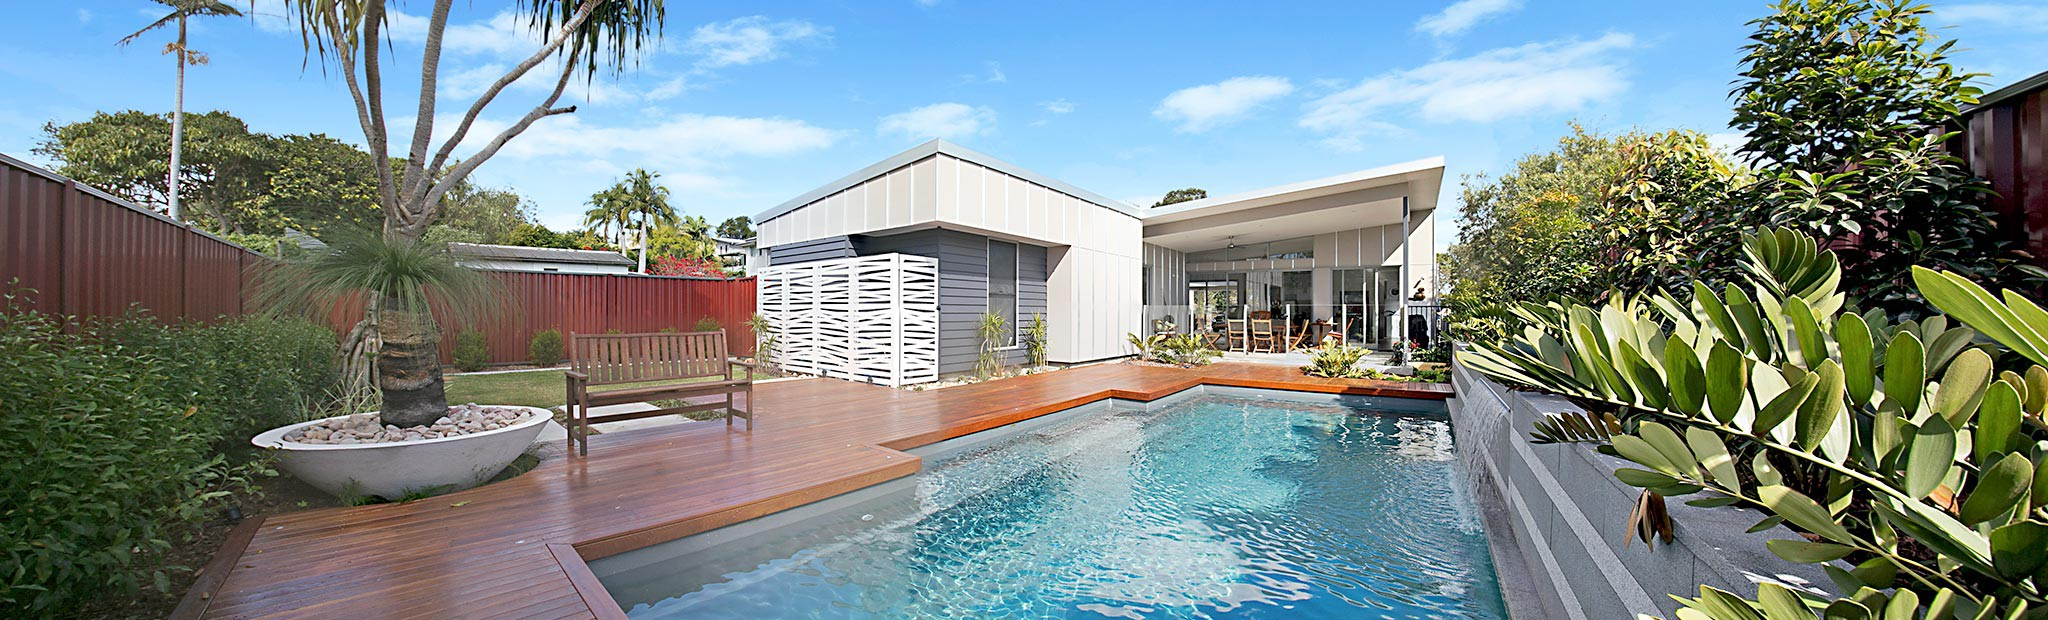 Landscape brisbane landscaping design for Pool design brisbane